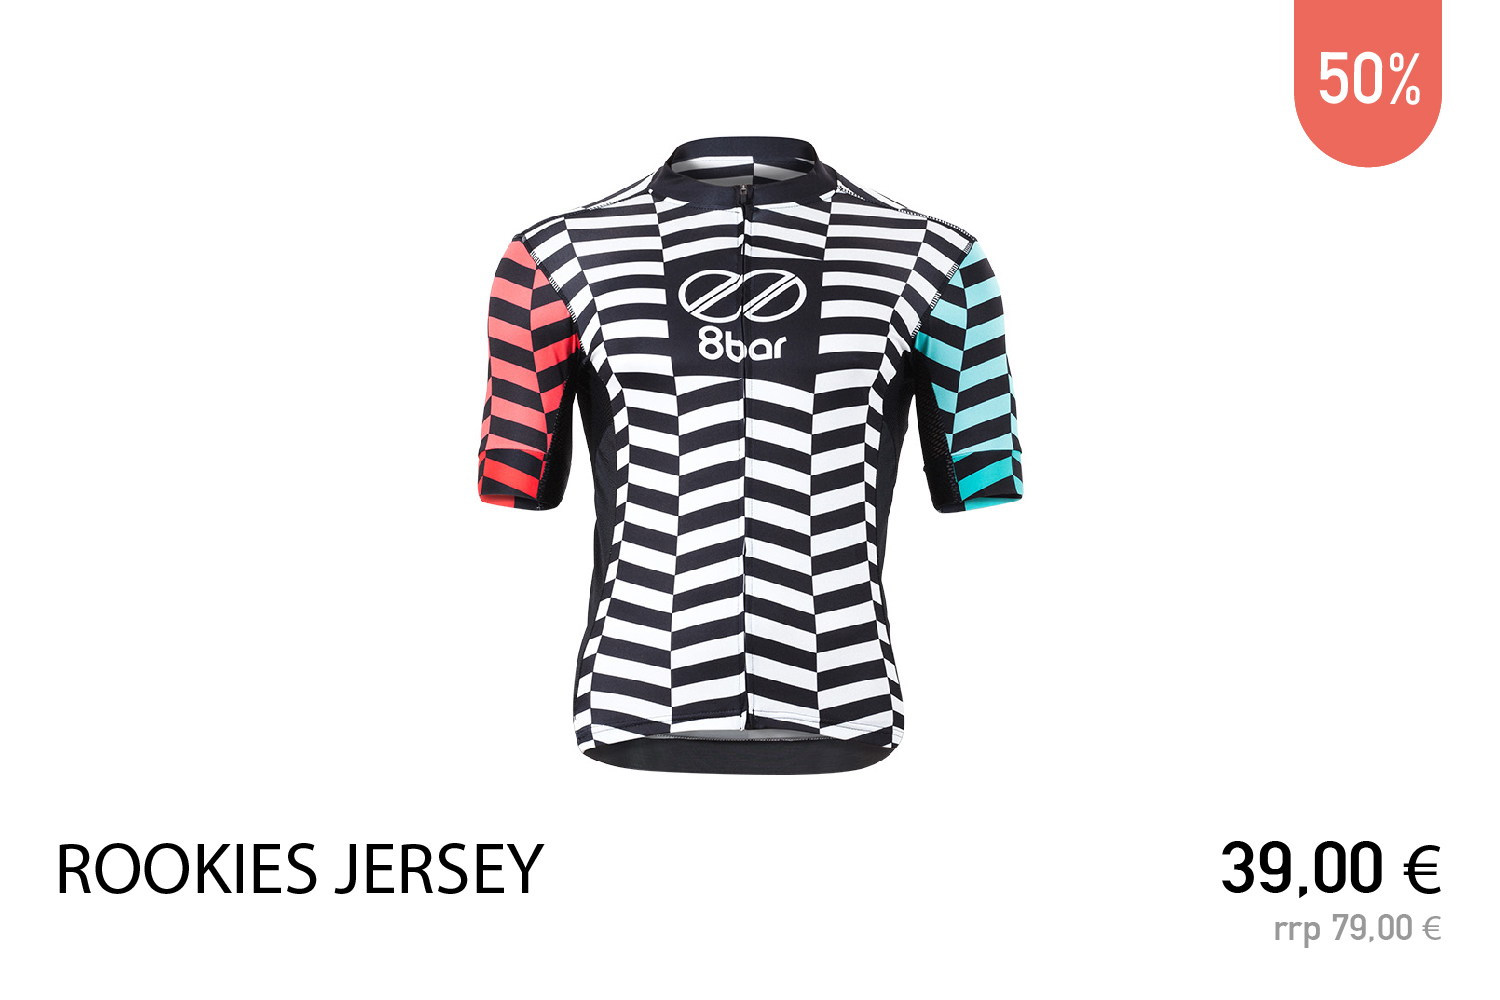 8bar bikes end of season 2017 productsample rookie jersey quer 01 01 - 8bar Sale - Save up to 50%!